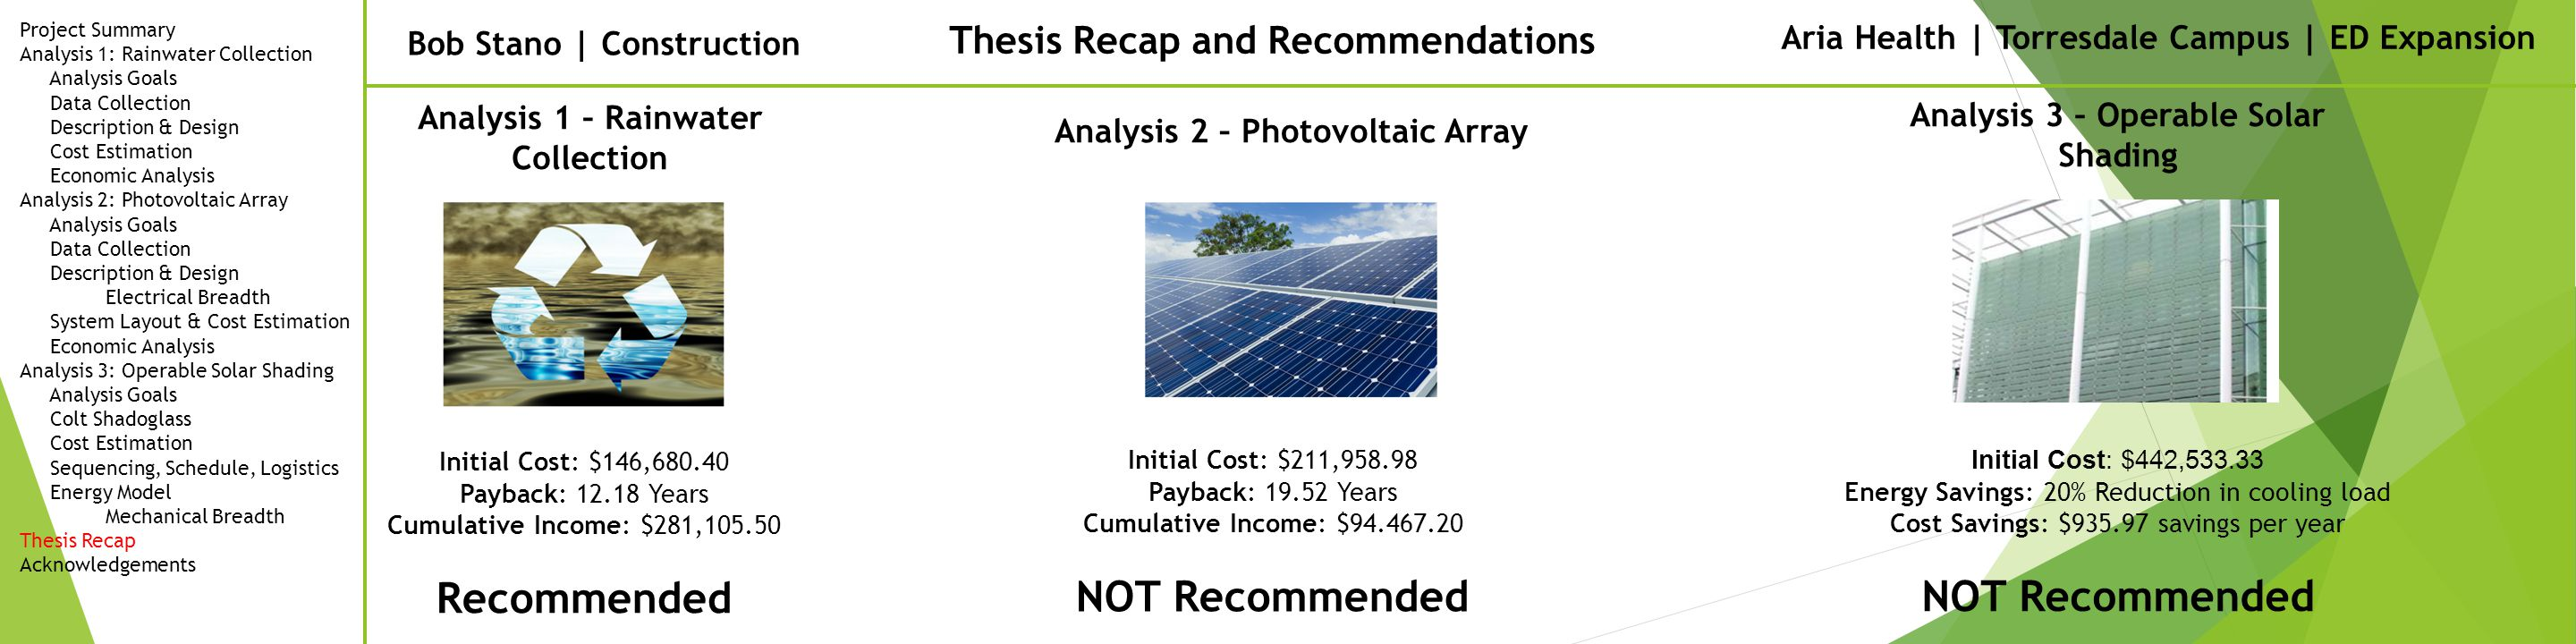 Bob Stano | Construction Aria Health | Torresdale Campus | ED Expansion Thesis Recap and Recommendations Analysis 1 – Rainwater Collection Analysis 2 – Photovoltaic Array Analysis 3 – Operable Solar Shading Initial Cost: $146,680.40 Payback: 12.18 Years Cumulative Income: $281,105.50 Recommended Initial Cost: $211,958.98 Payback: 19.52 Years Cumulative Income: $94.467.20 NOT Recommended Initial Cost: $442,533.33 Energy Savings: 20% Reduction in cooling load Cost Savings: $935.97 savings per year NOT Recommended Project Summary Analysis 1: Rainwater Collection Analysis Goals Data Collection Description & Design Cost Estimation Economic Analysis Analysis 2: Photovoltaic Array Analysis Goals Data Collection Description & Design Electrical Breadth System Layout & Cost Estimation Economic Analysis Analysis 3: Operable Solar Shading Analysis Goals Colt Shadoglass Cost Estimation Sequencing, Schedule, Logistics Energy Model Mechanical Breadth Thesis Recap Acknowledgements